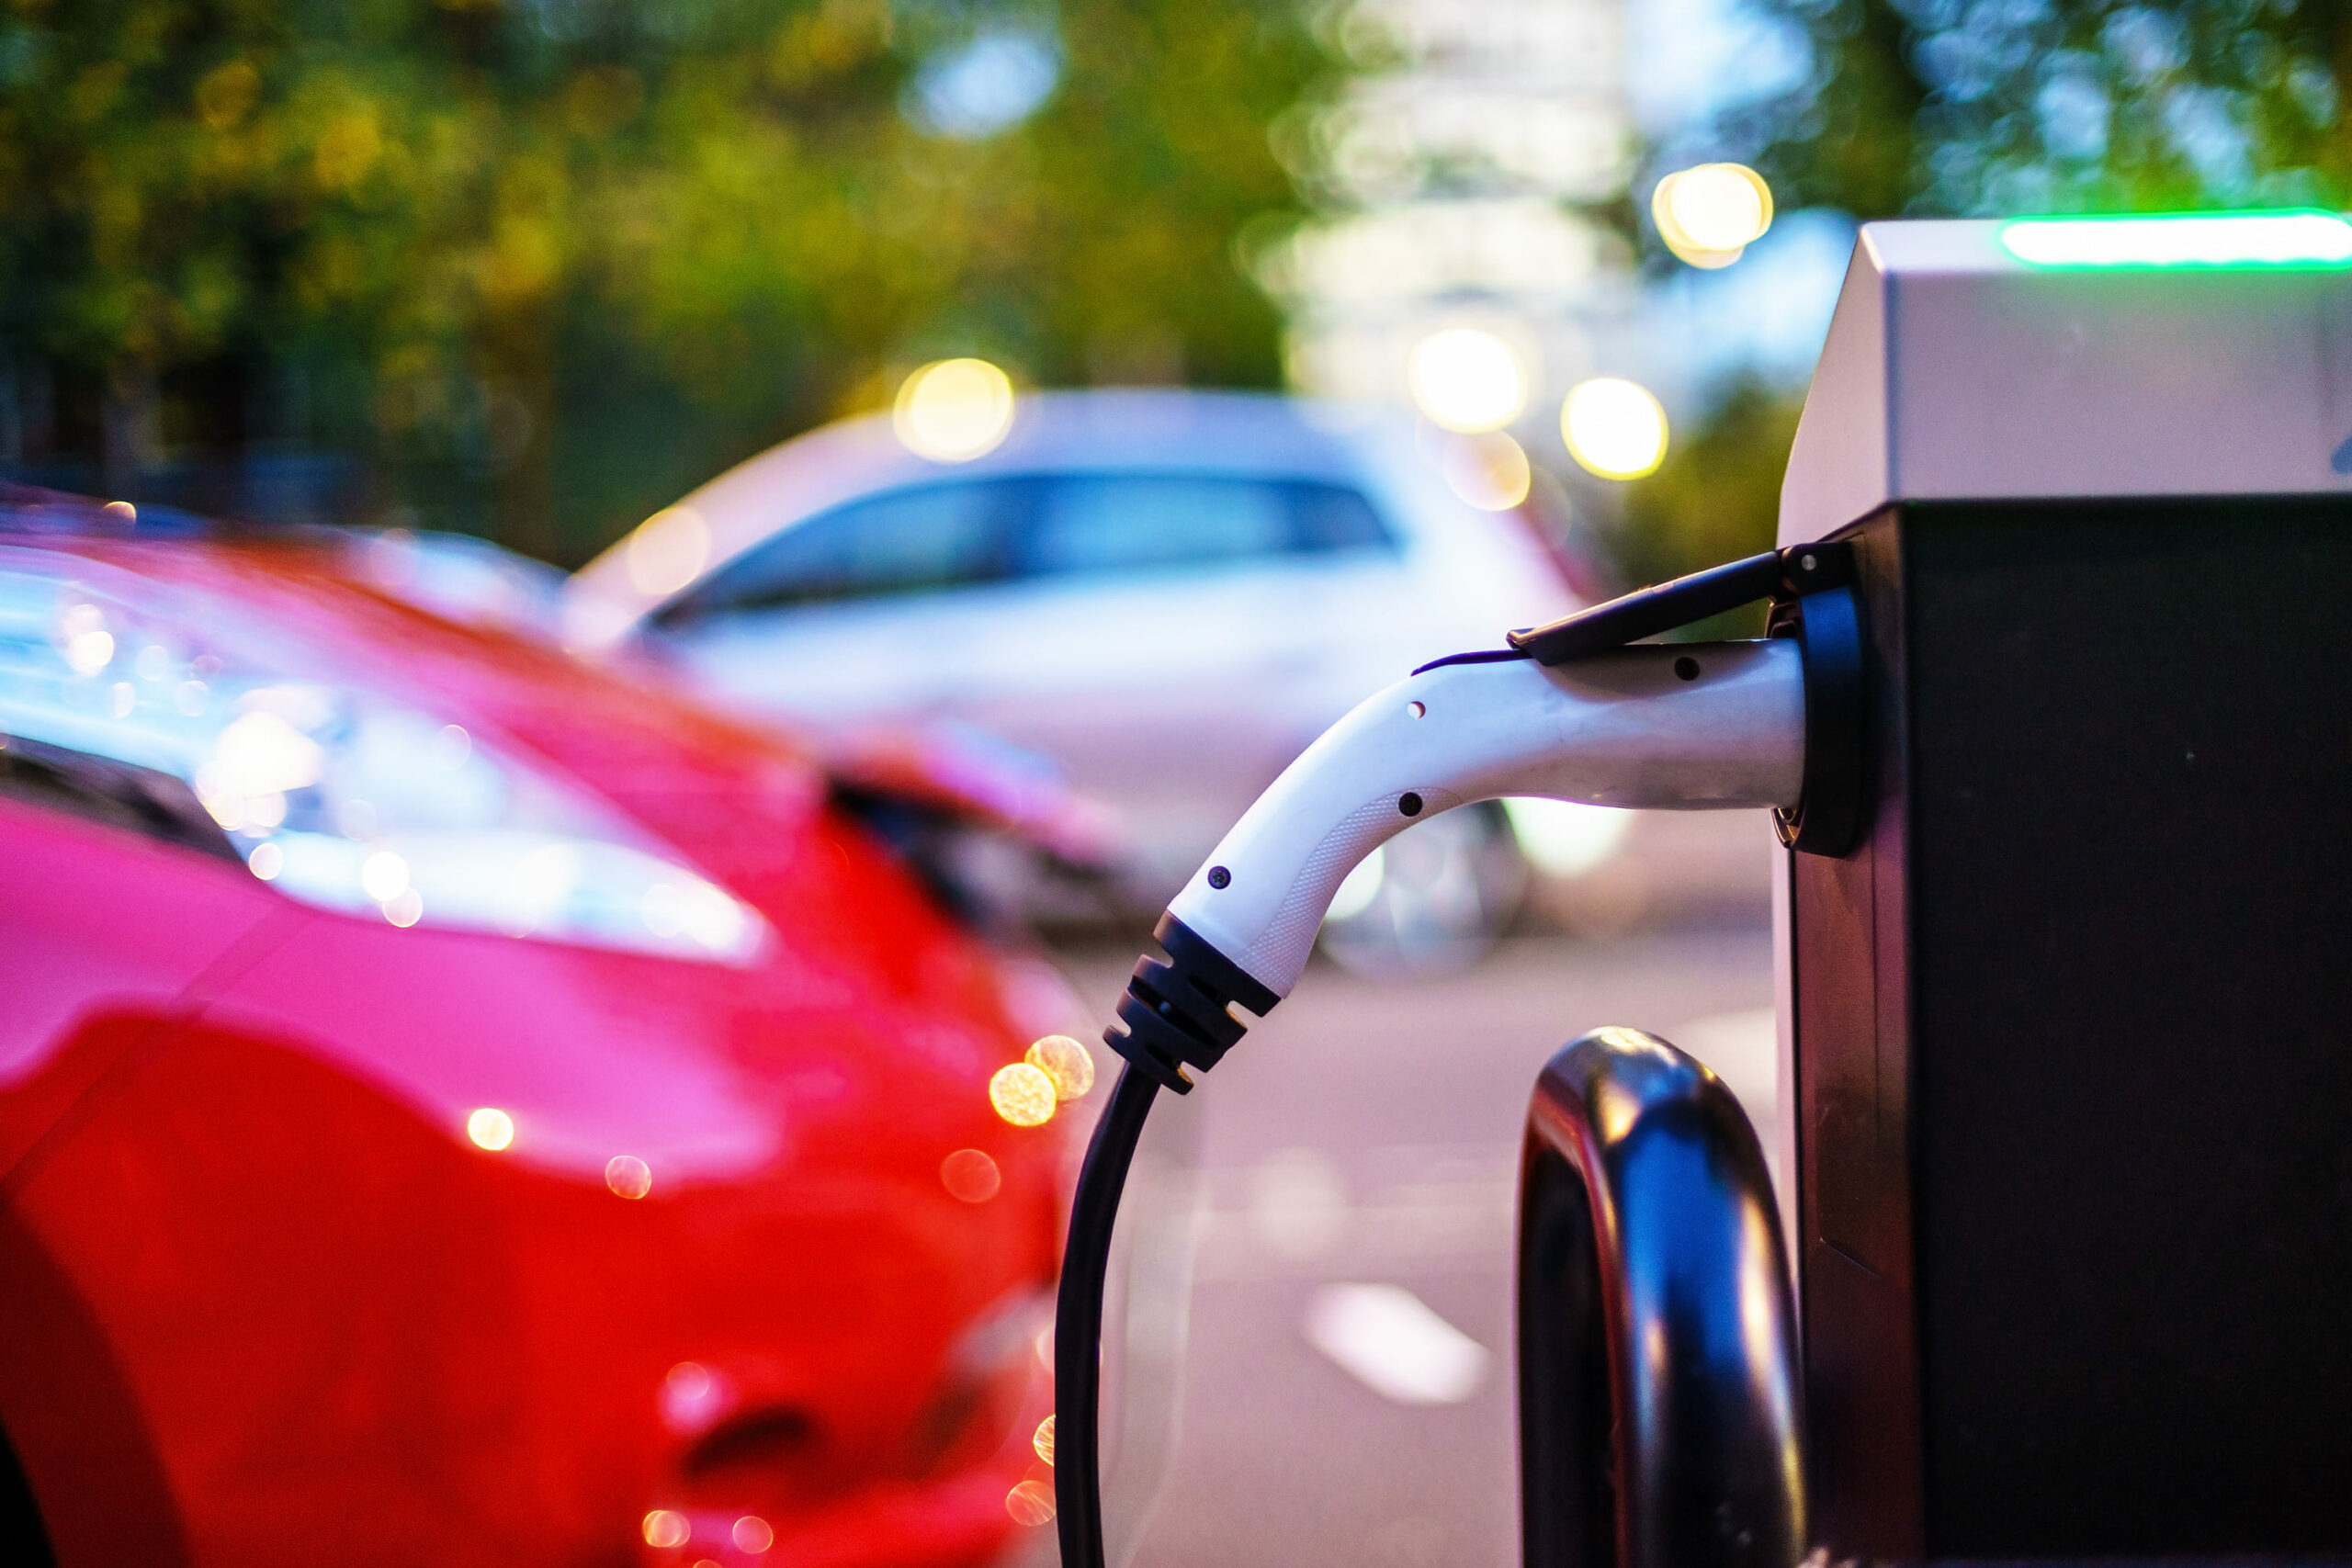 Electric vehicle grants slashed by £500